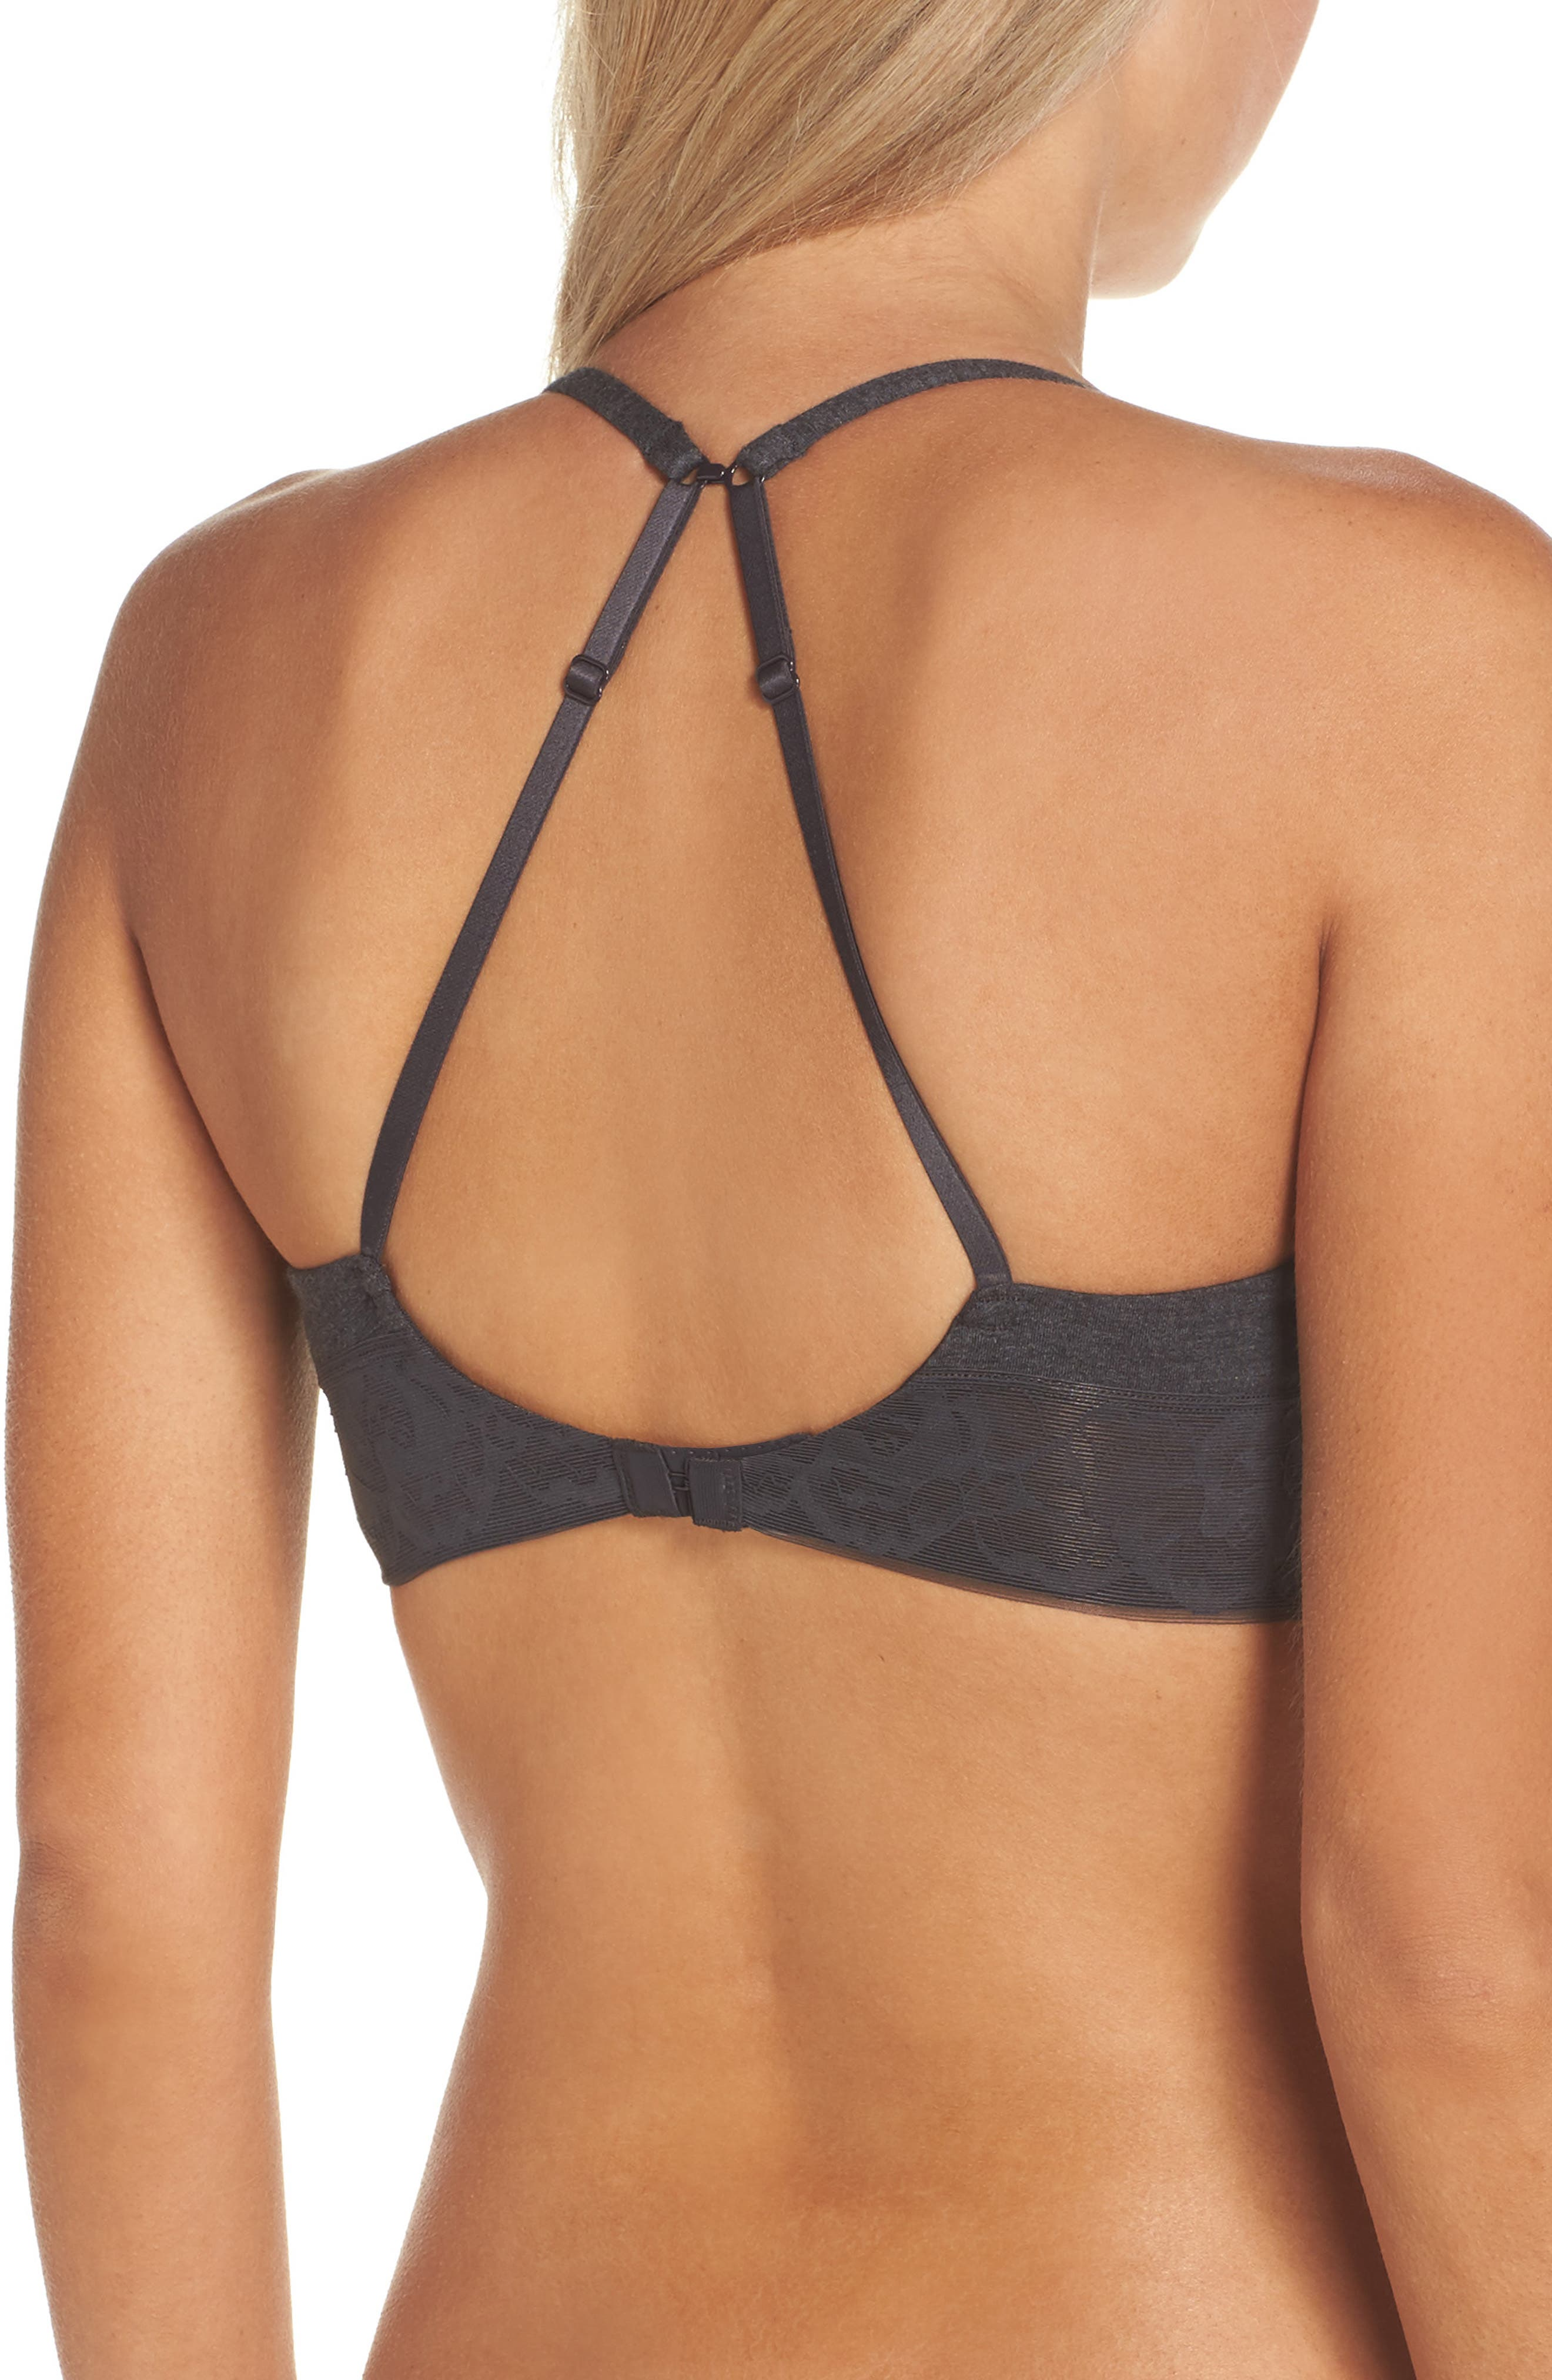 Alternate Image 3  - On Gossamer Wireless Contour Bra